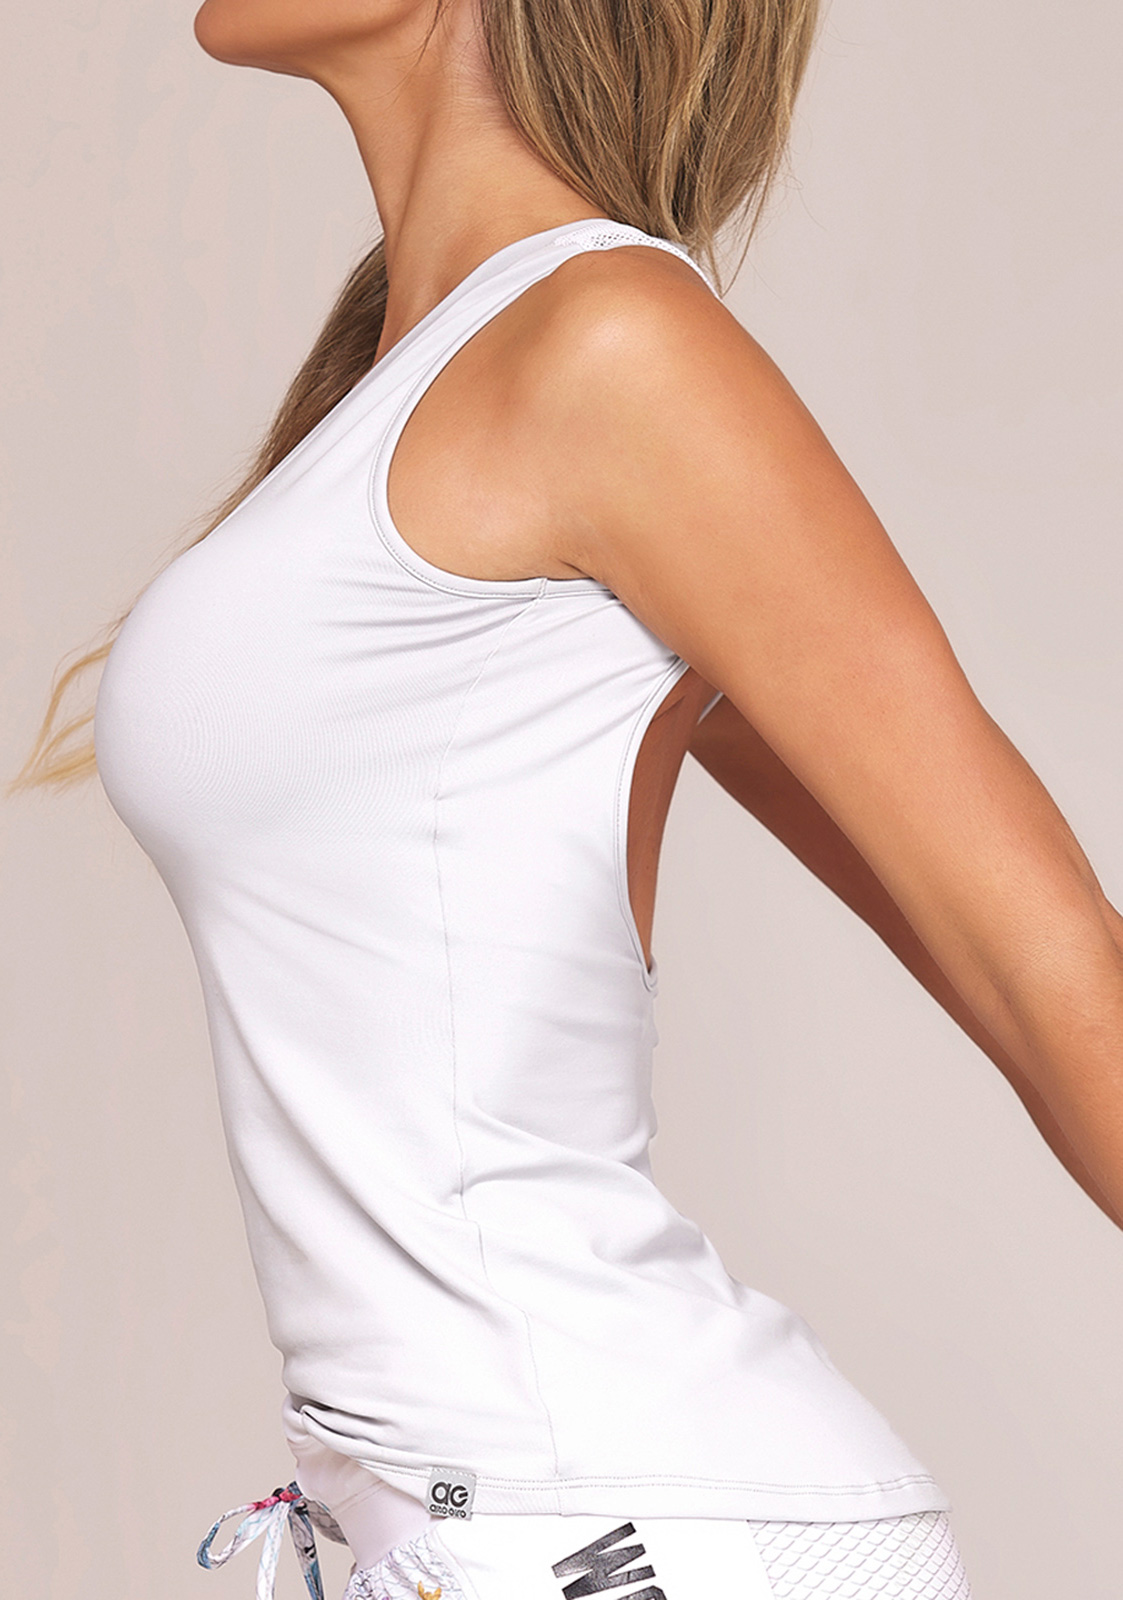 c851337ec44d5 Fitness top White Fitness Tank Top With Open Back - Top Soave Workout